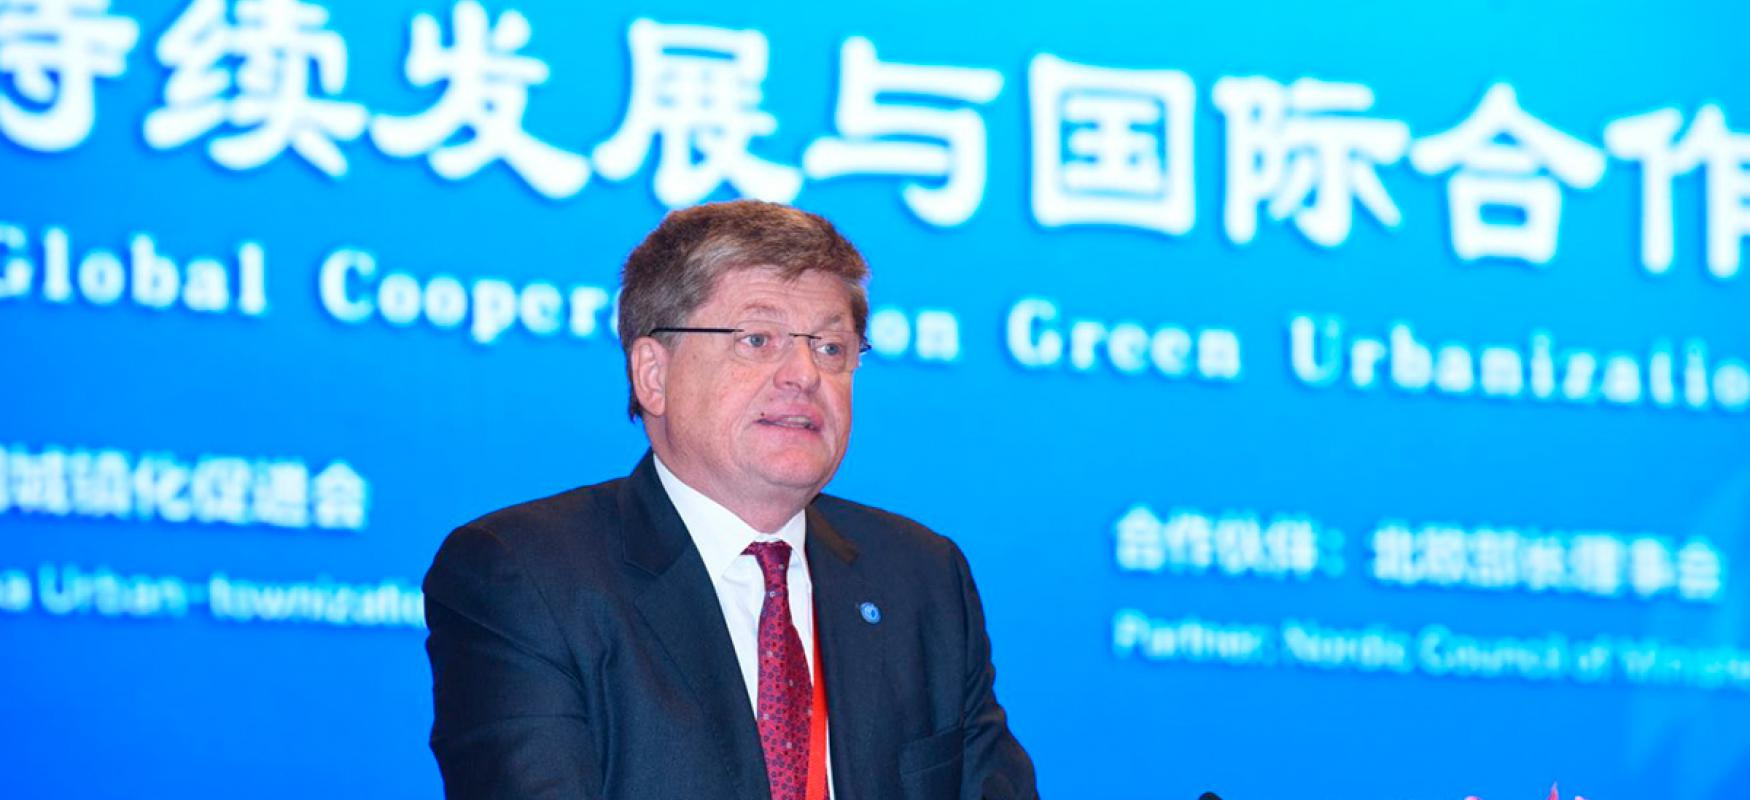 Nordic Innovation Managing Director Svein Berg speaking at the Green Sustainable Development Conference in Beijing.